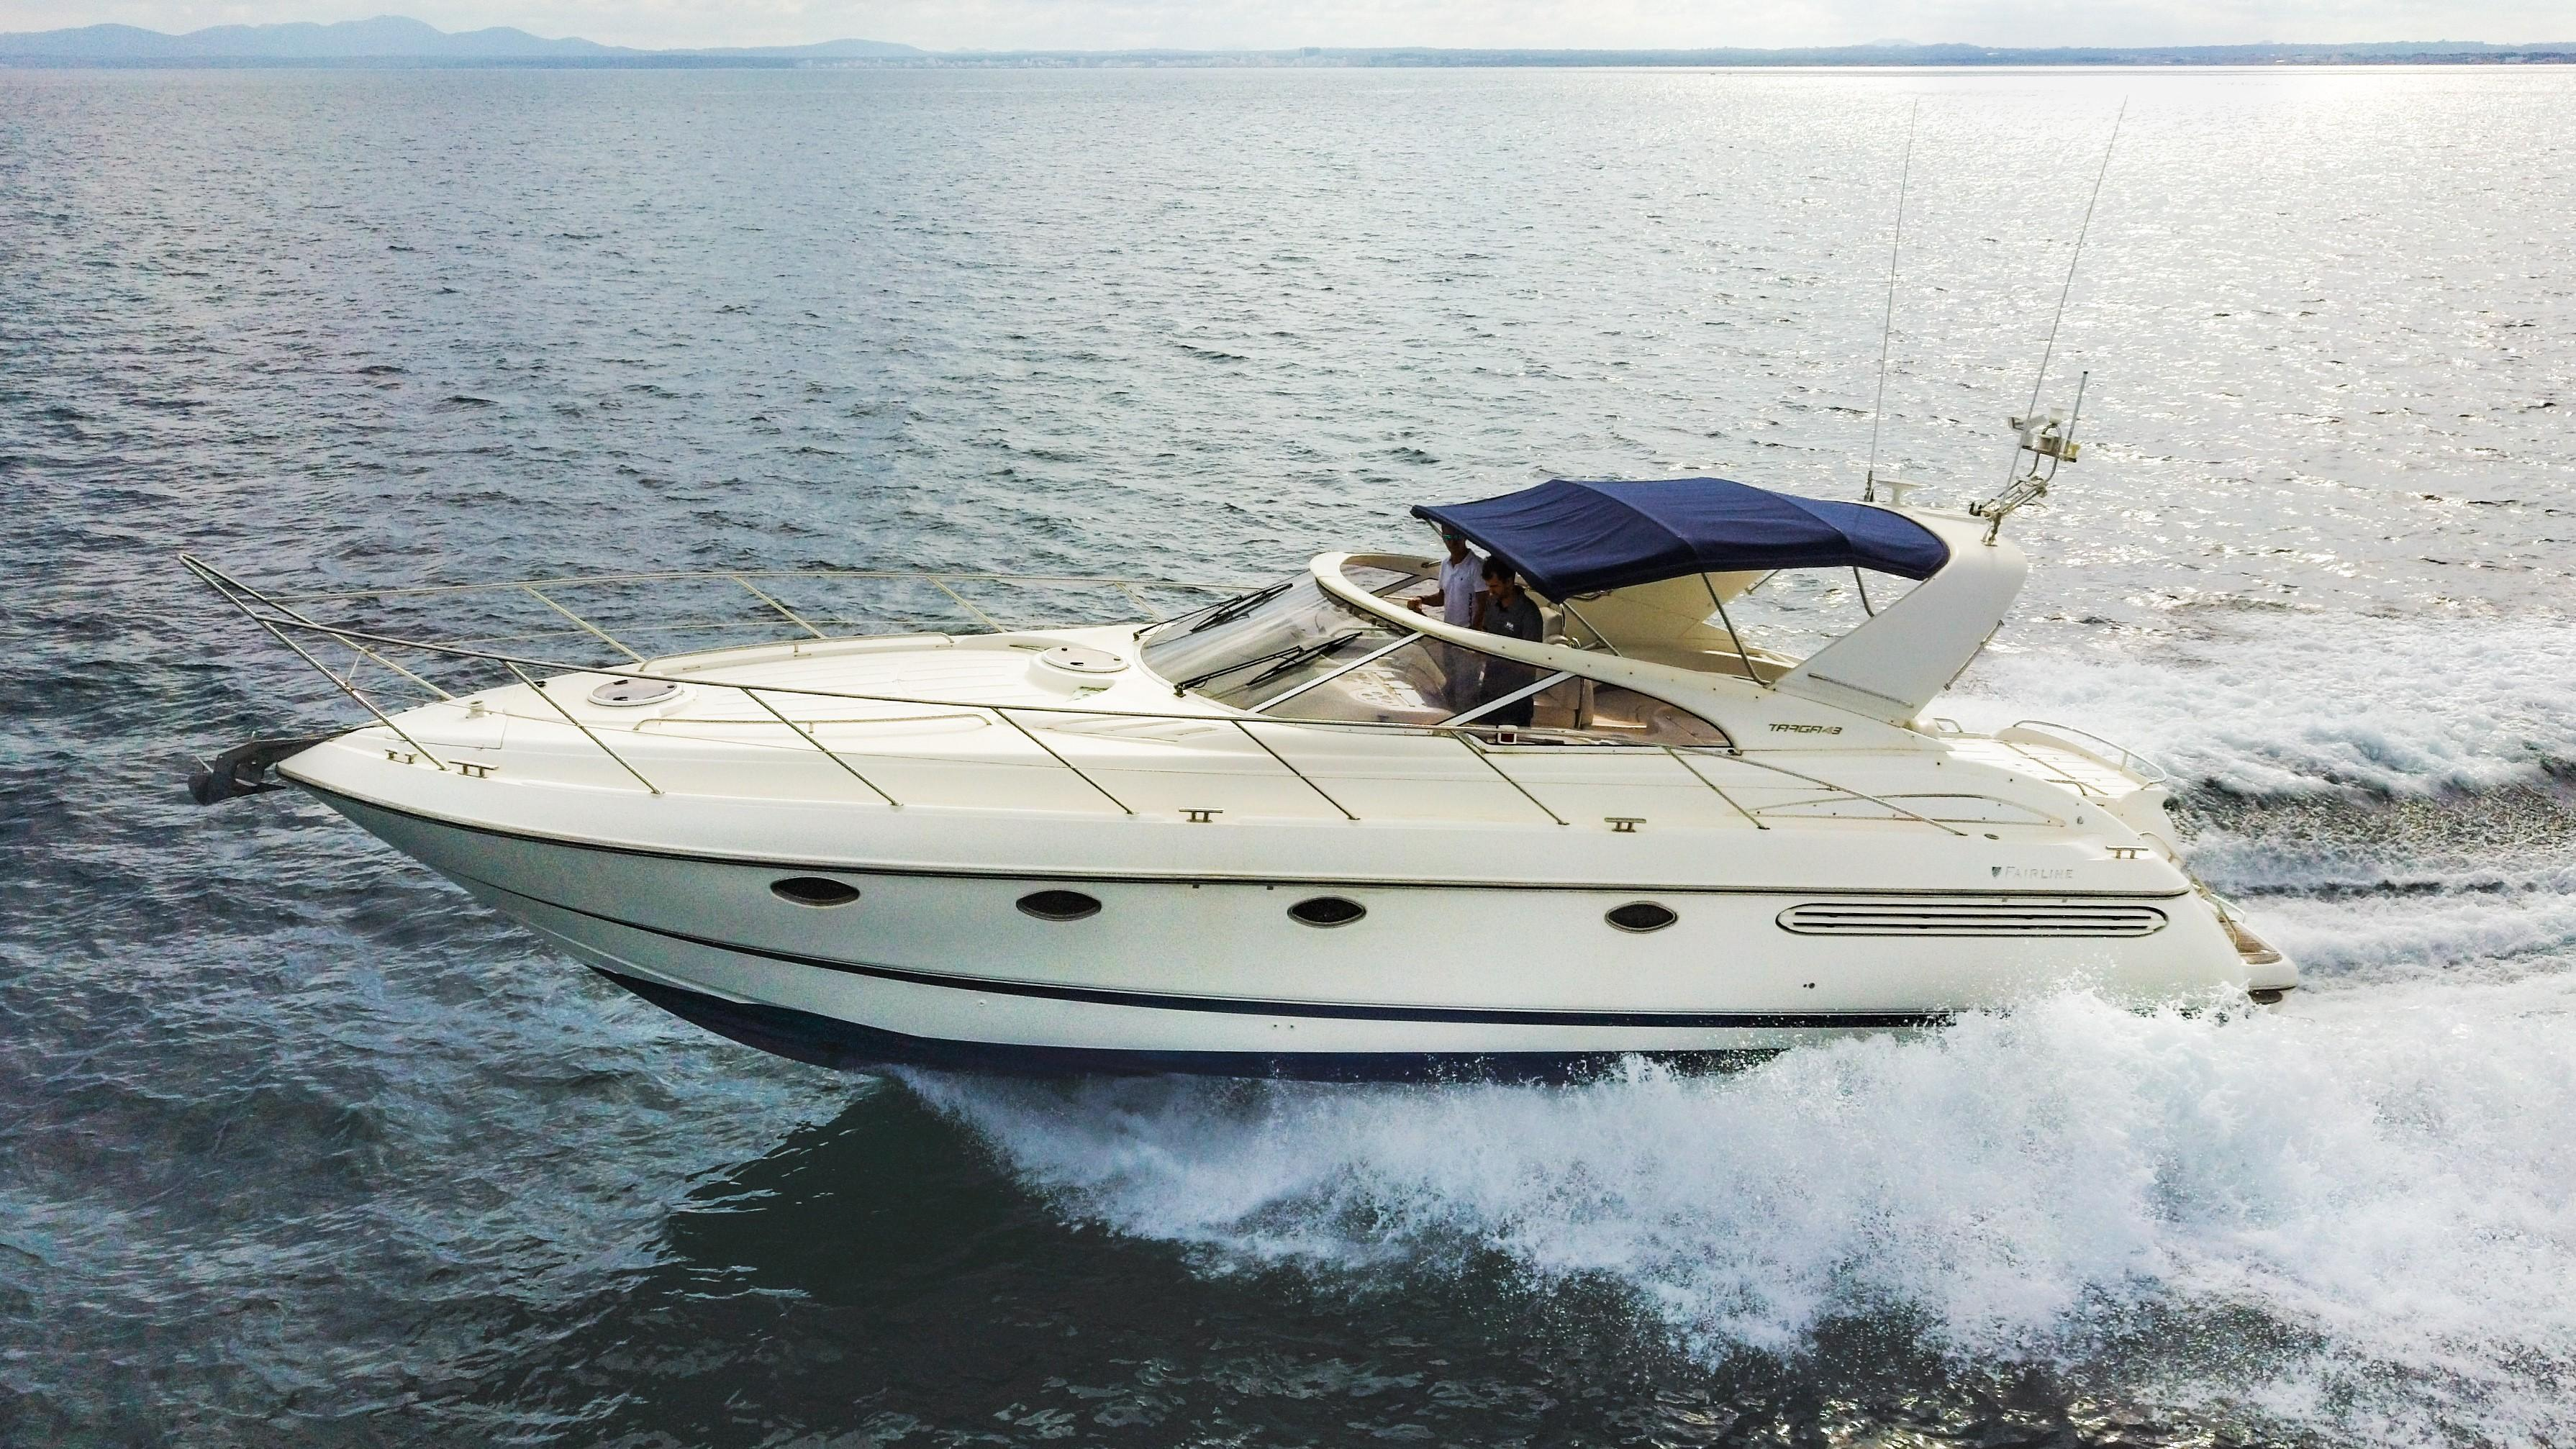 Fairline Targa 43 (De ocasión)